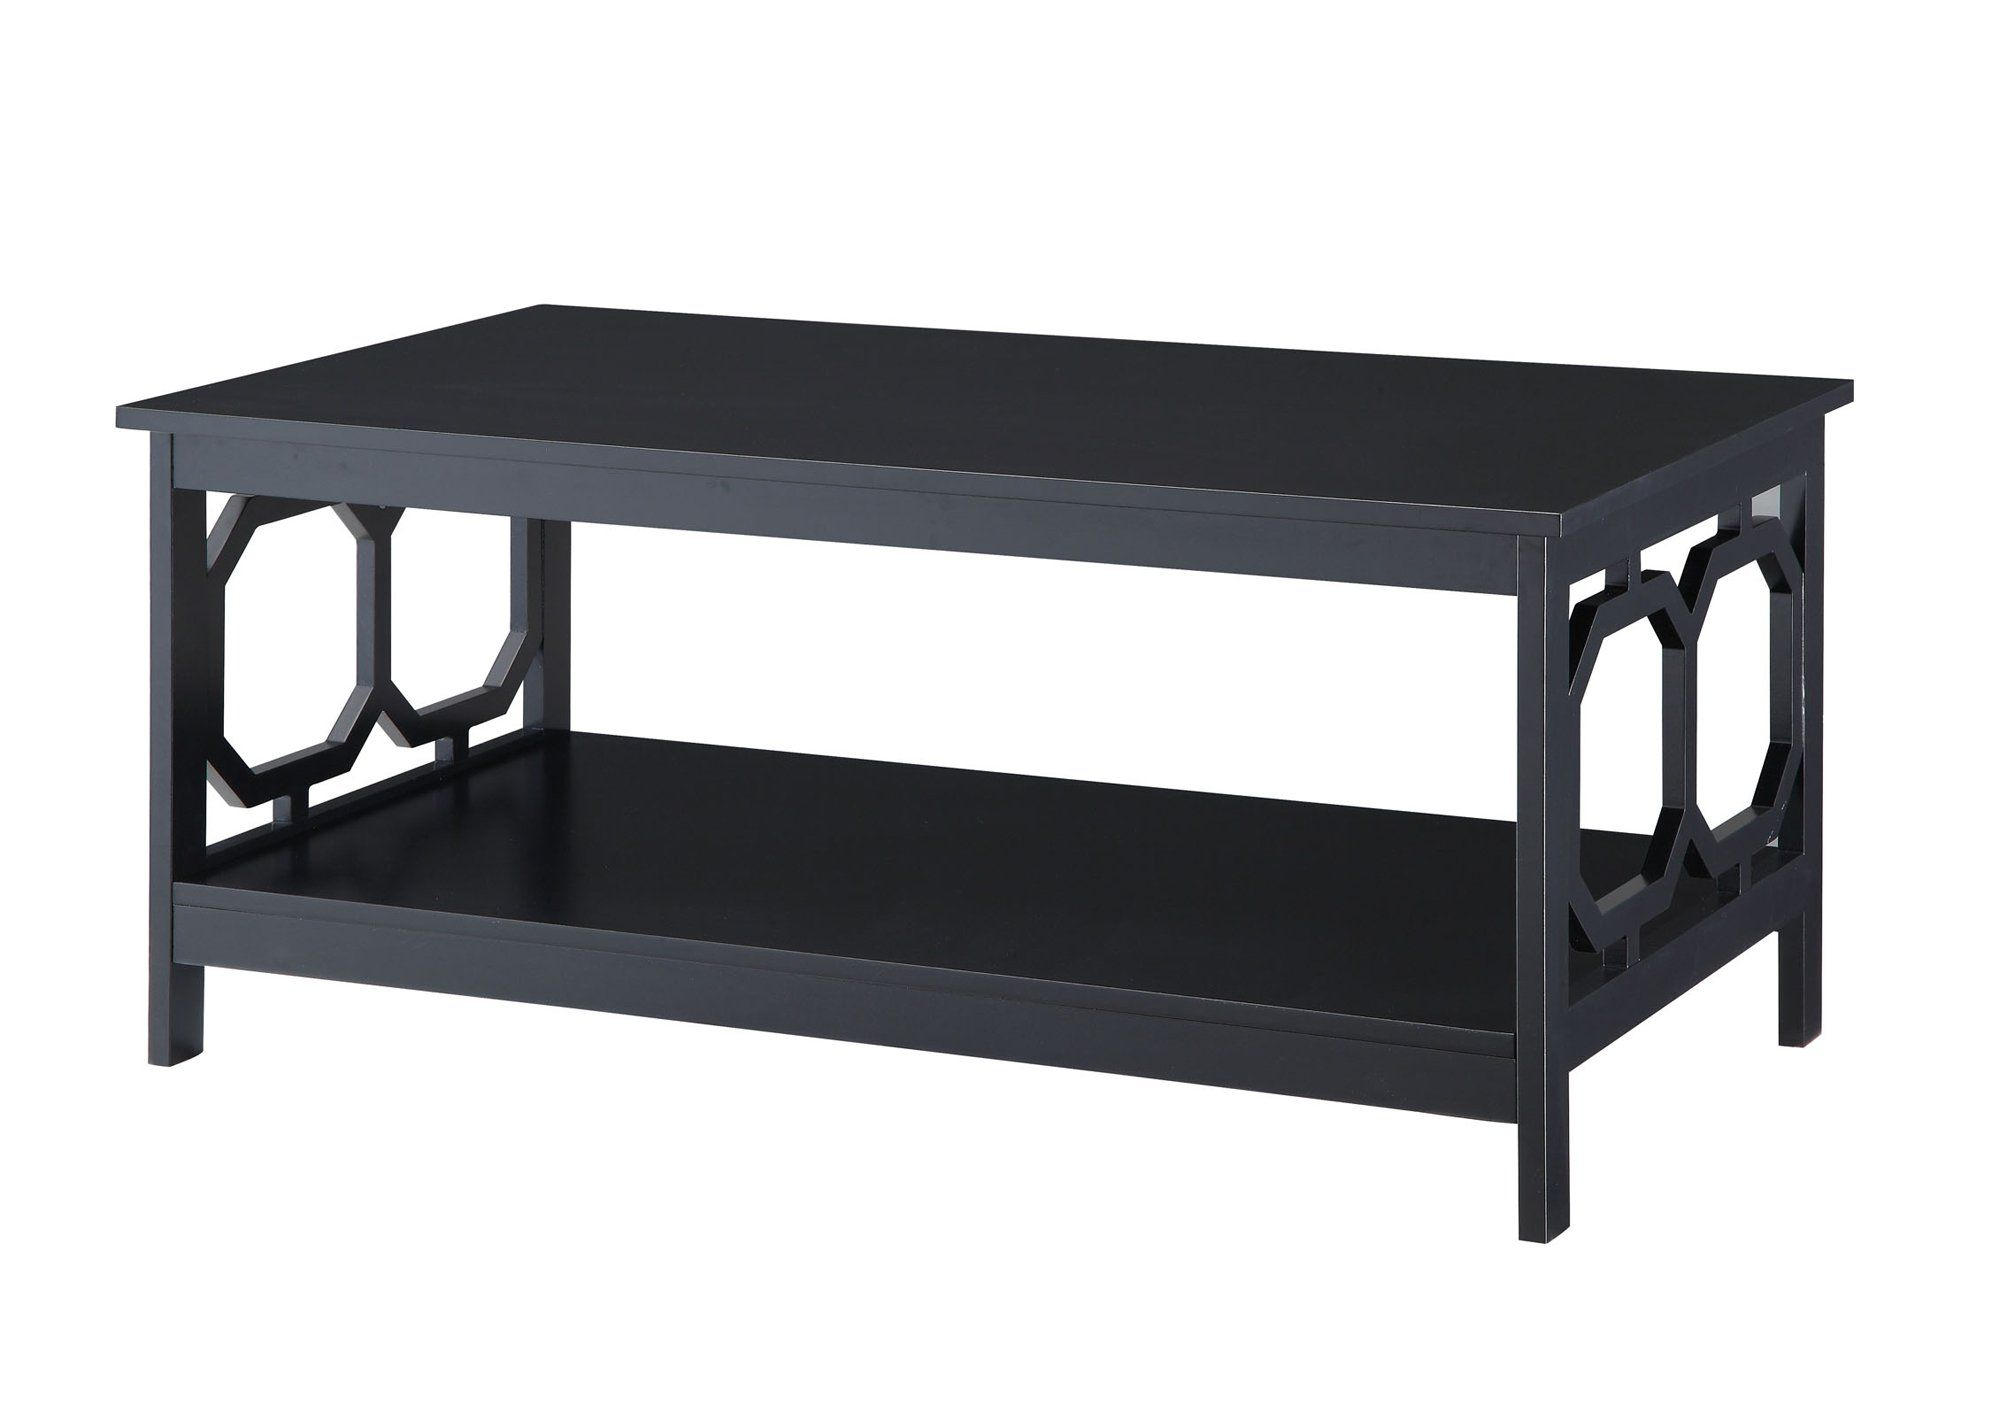 Convenience Concepts Omega Coffee Table Black *** Read More Reviews